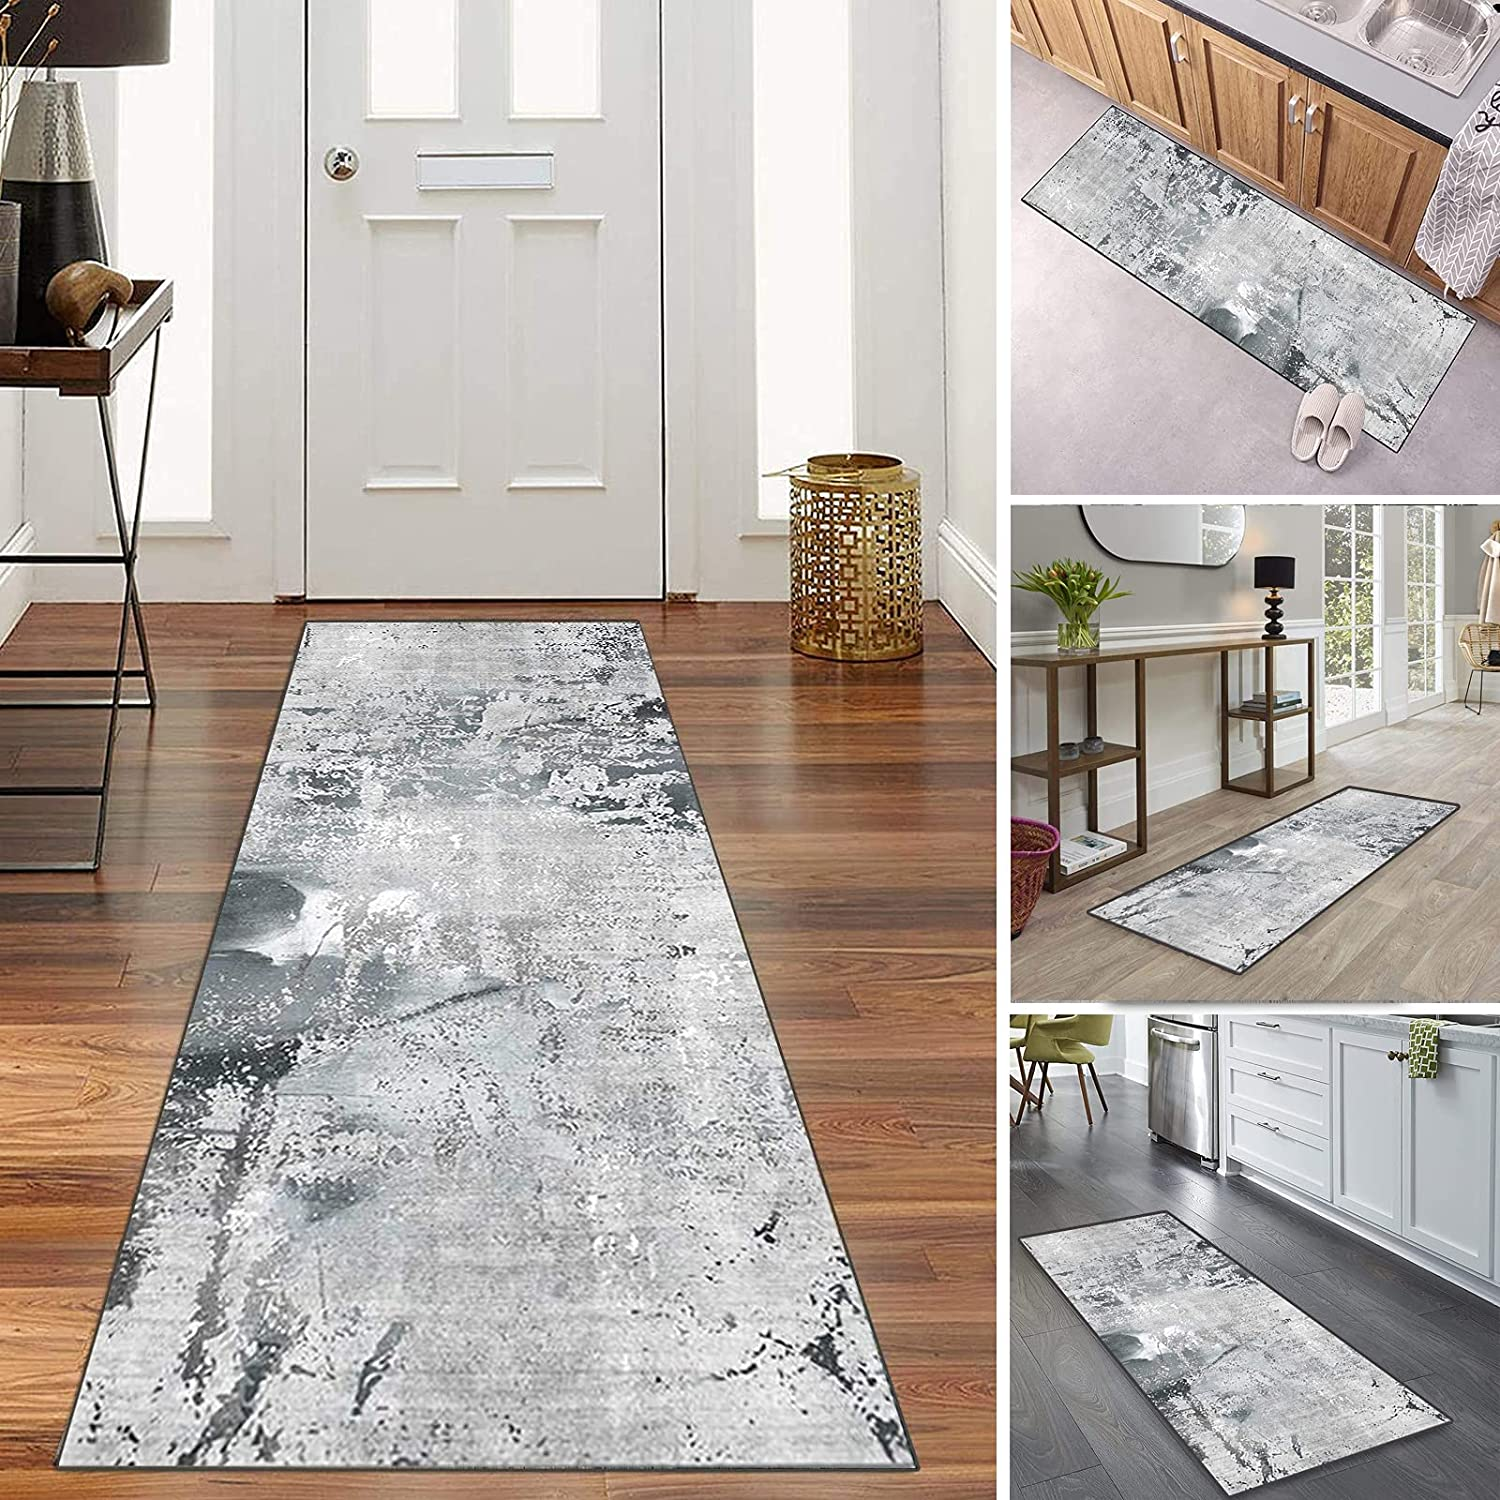 Aiwoqing Hallway Runner Rugs with Washab Department store Ranking TOP7 Non Rubber Backing Skid